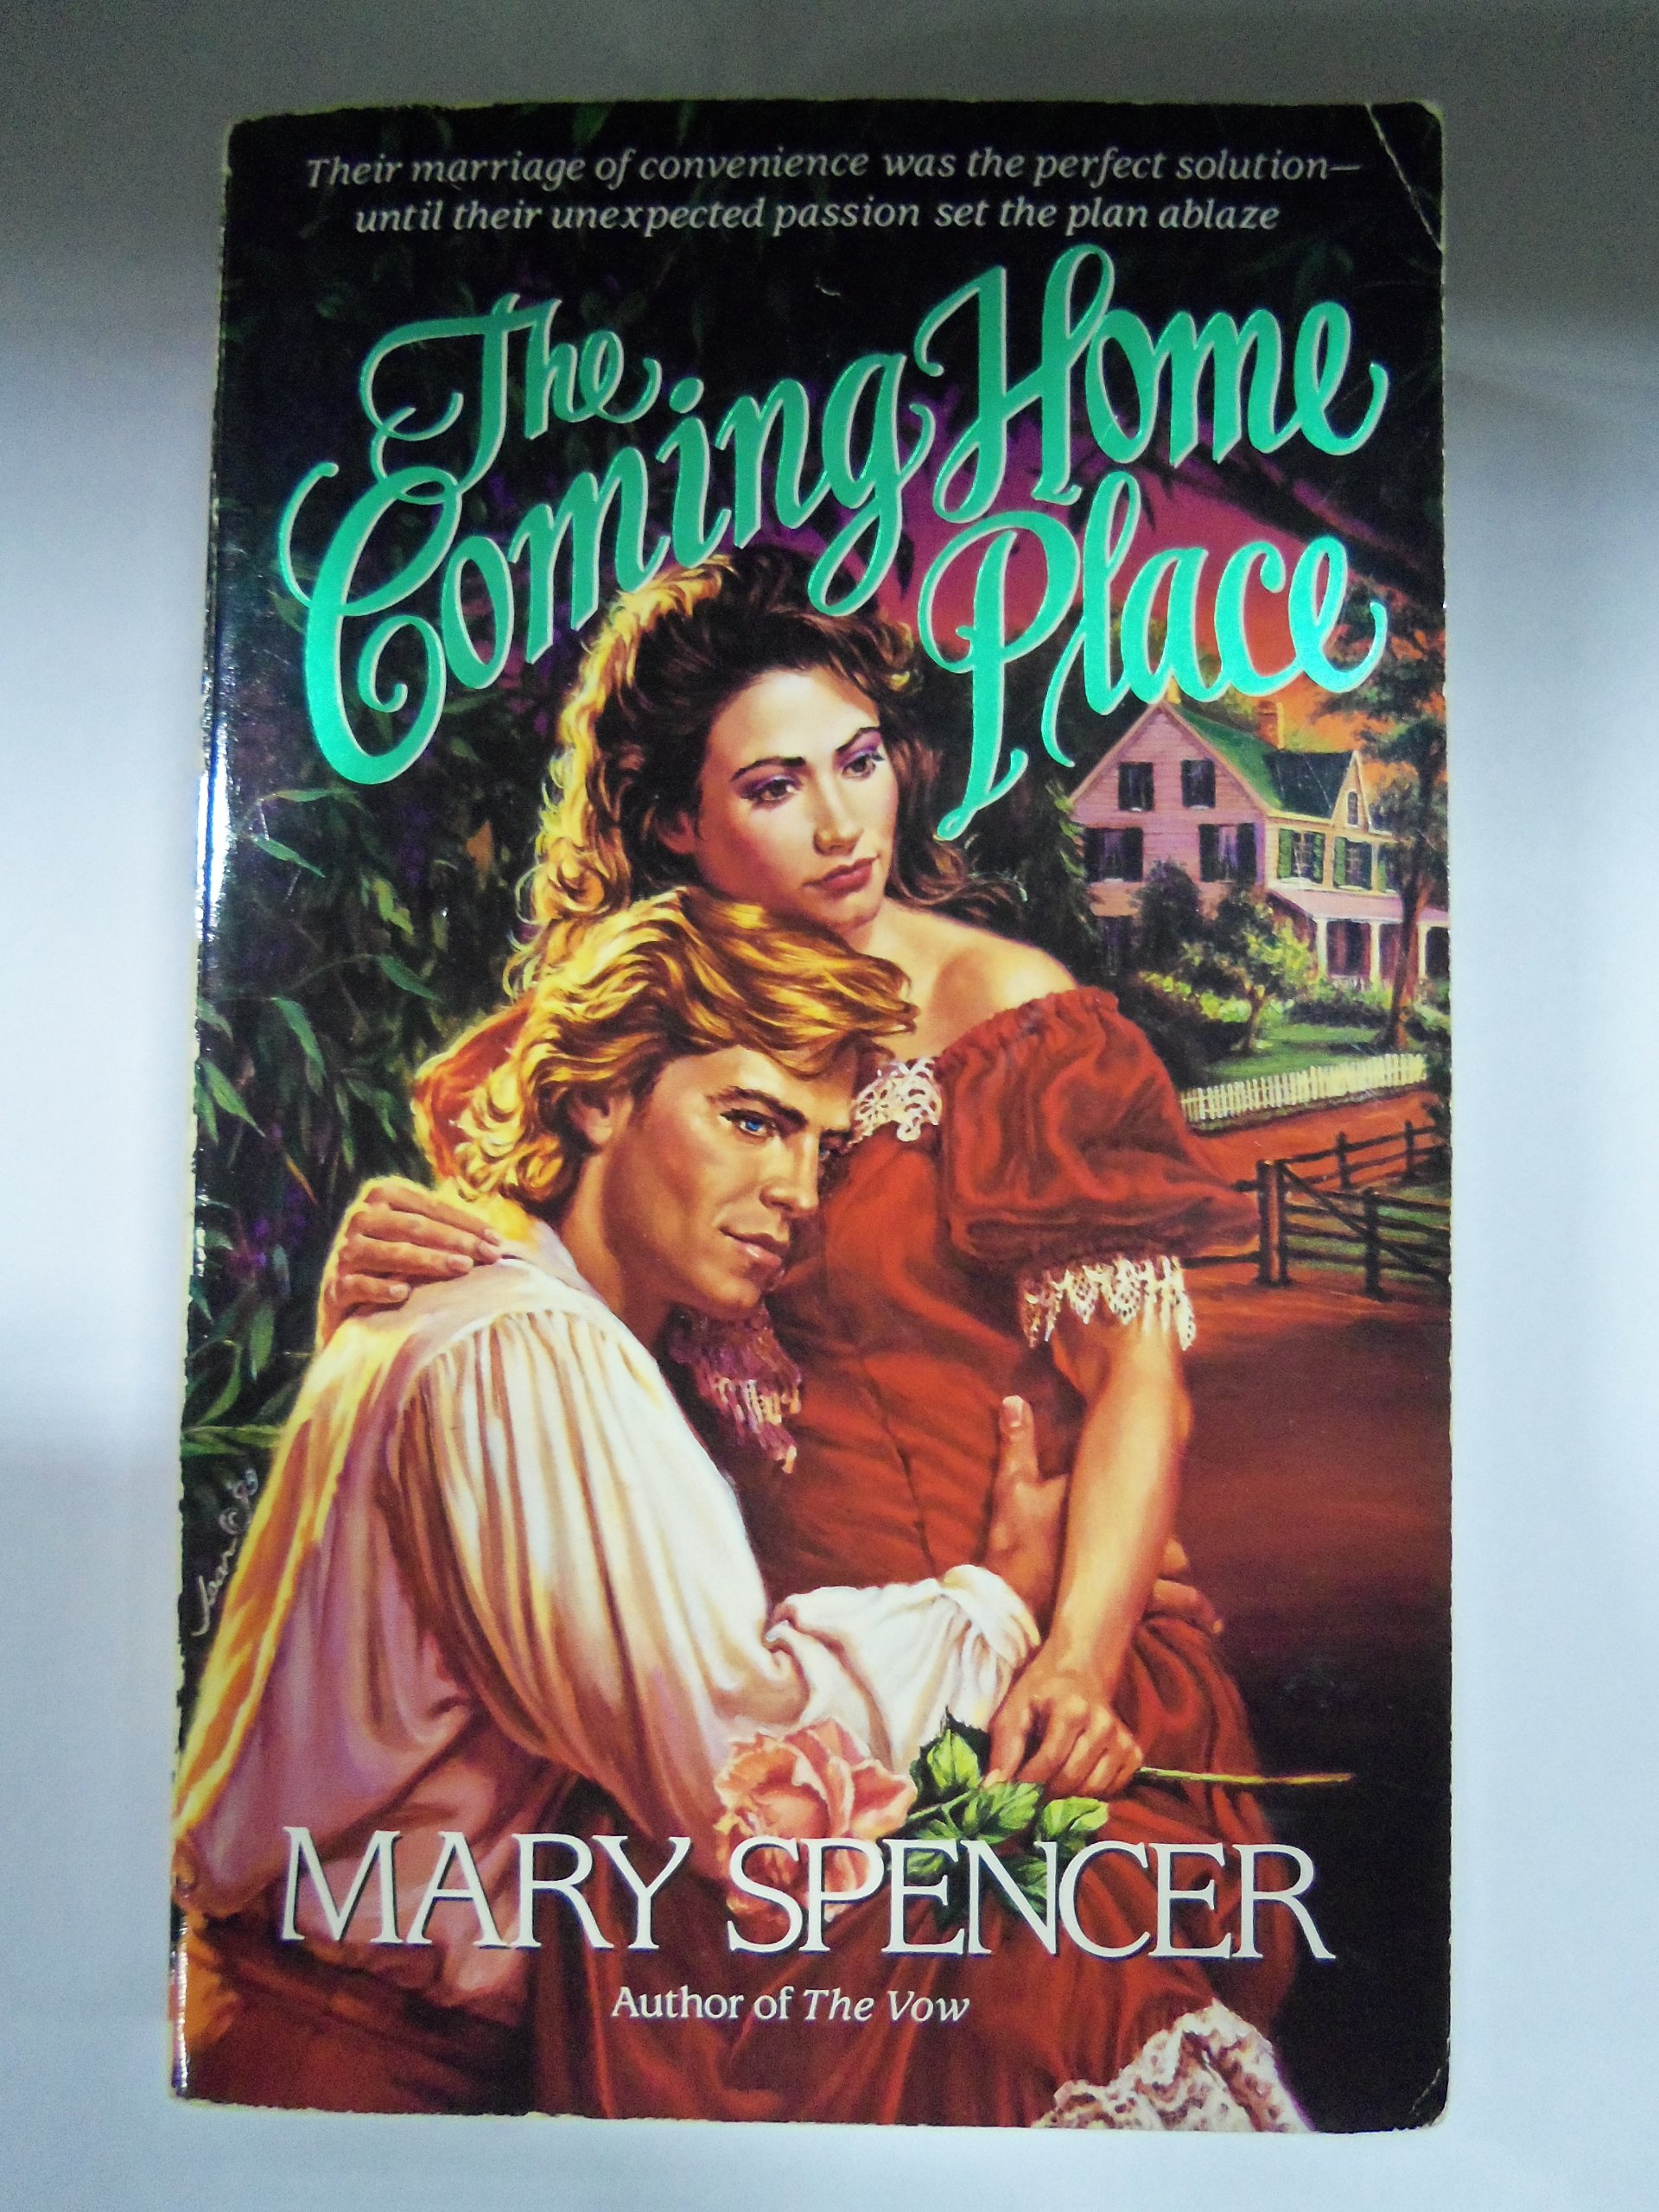 Buy The Coming Home Place: Monogram Book Online at Low